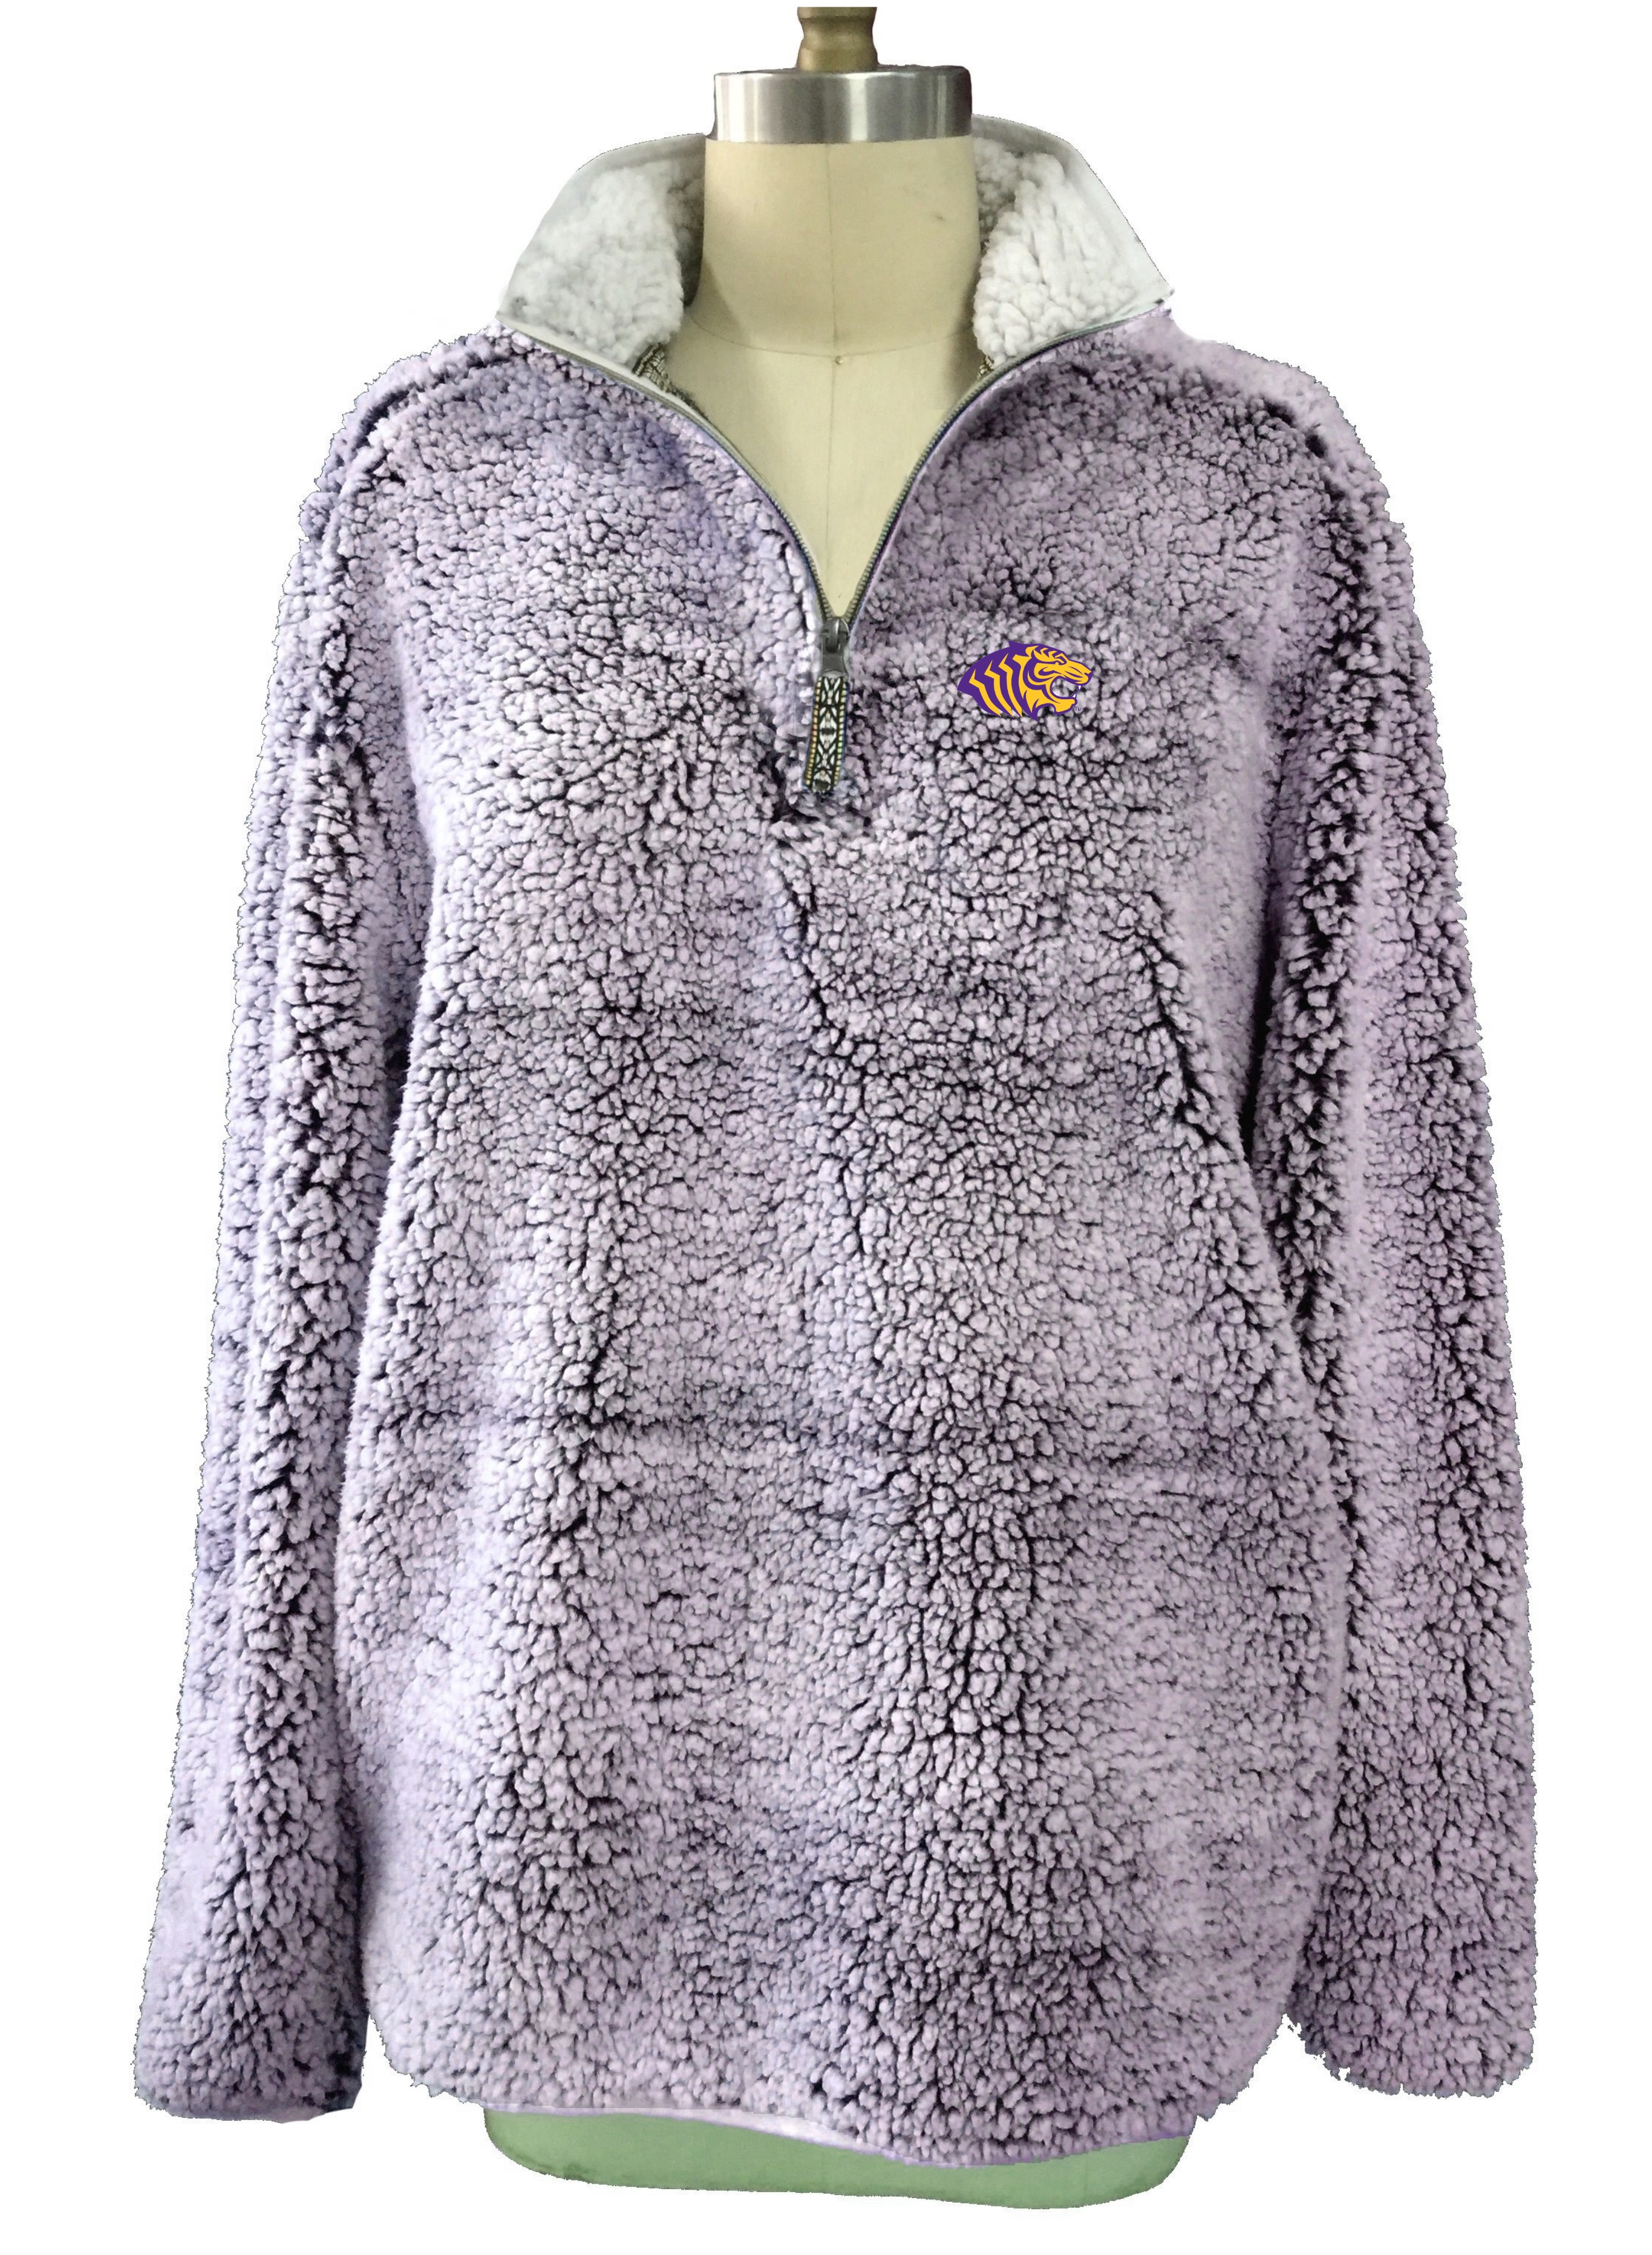 OUACHITA SHERPA HEATHERED 1/2 ZIP PULLOVER